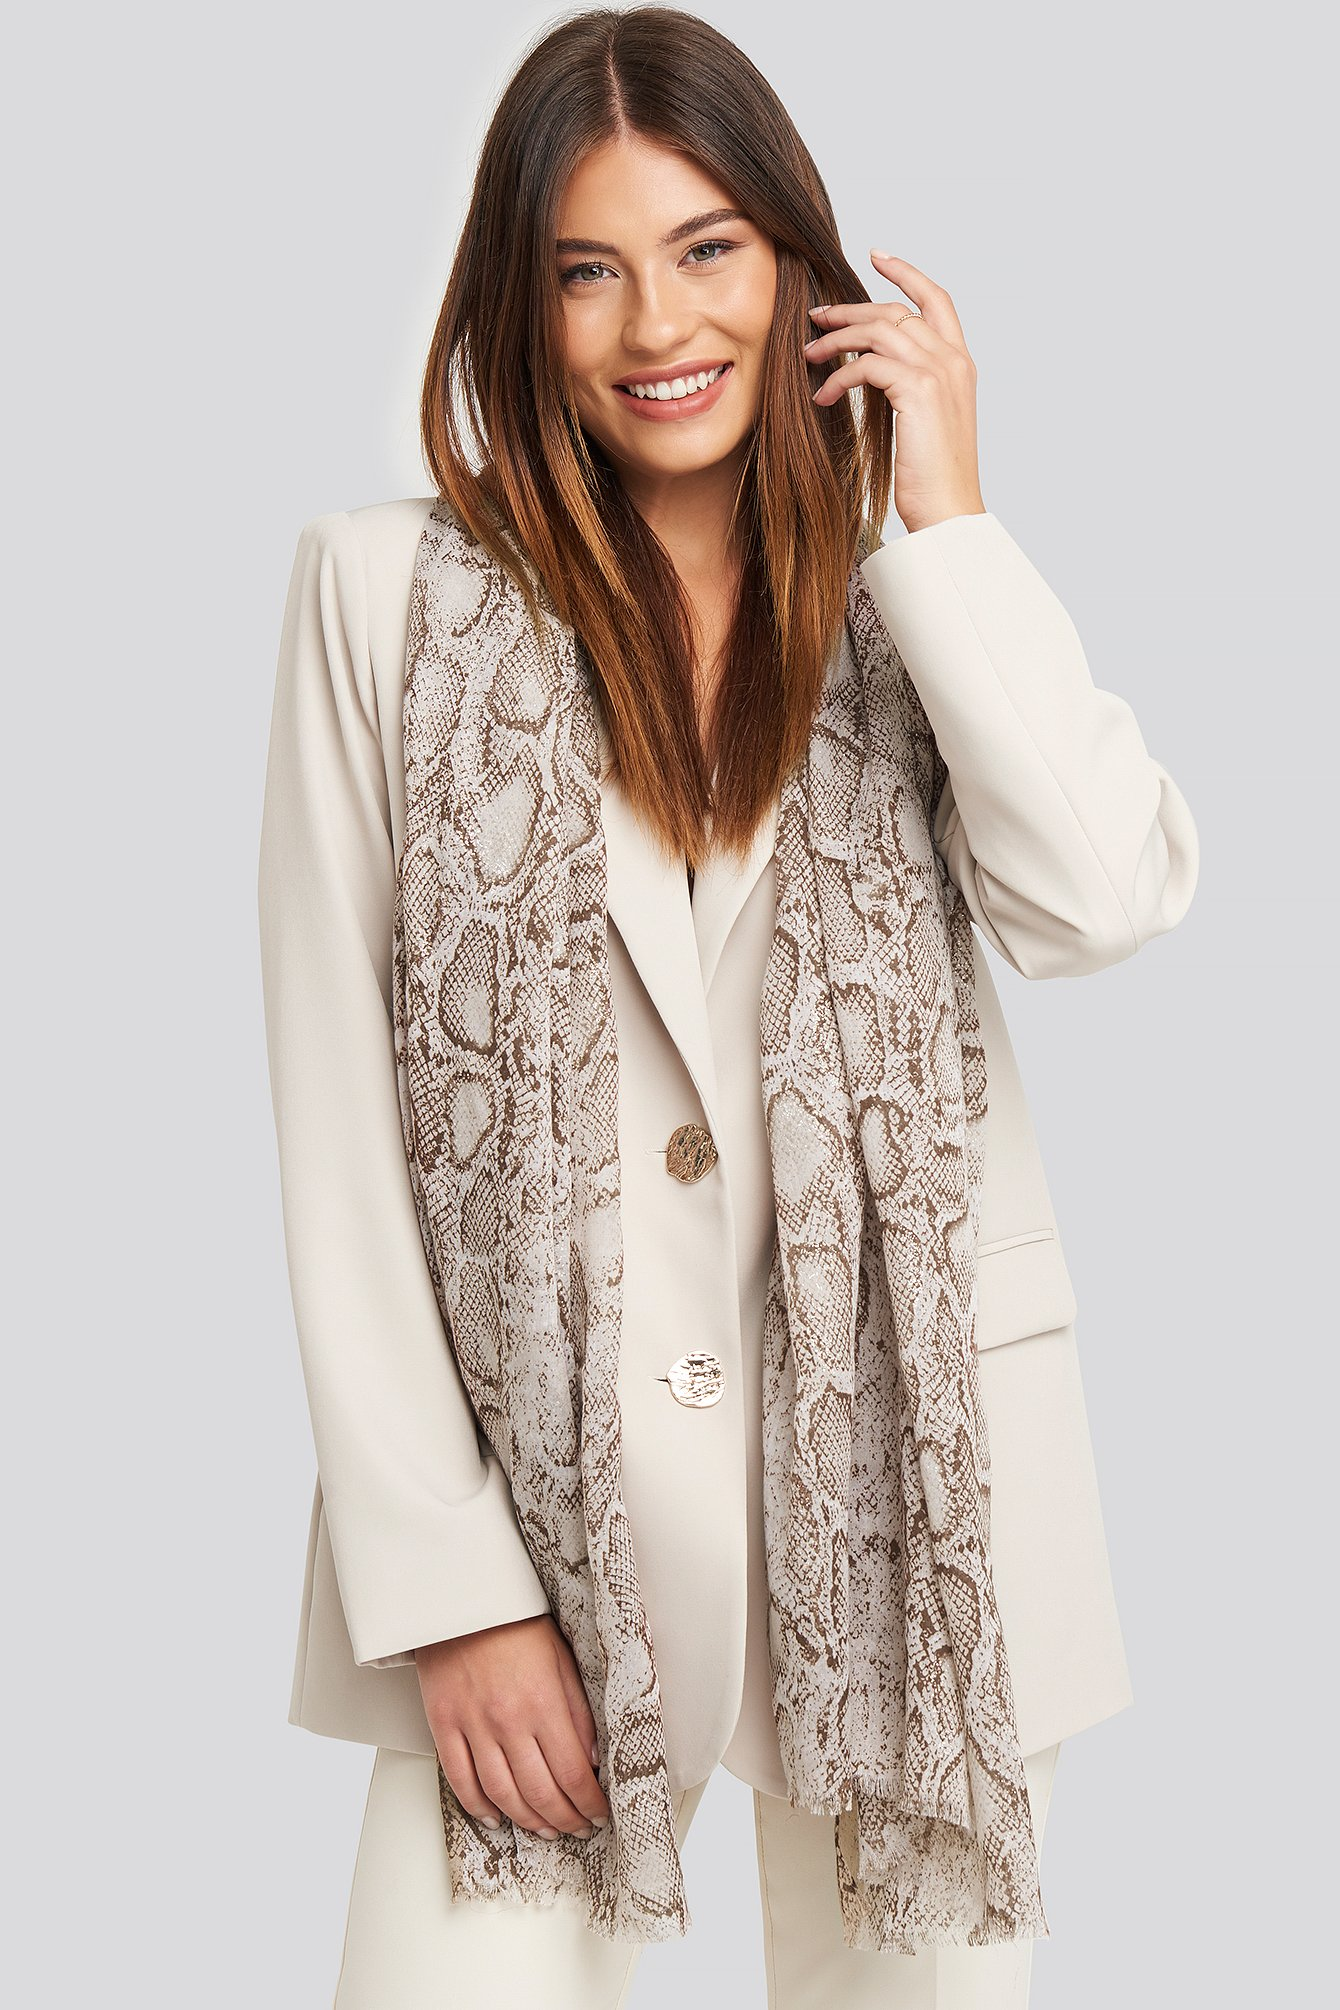 na-kd accessories -  Thin Woven Snake Scarf - Beige,Multicolor